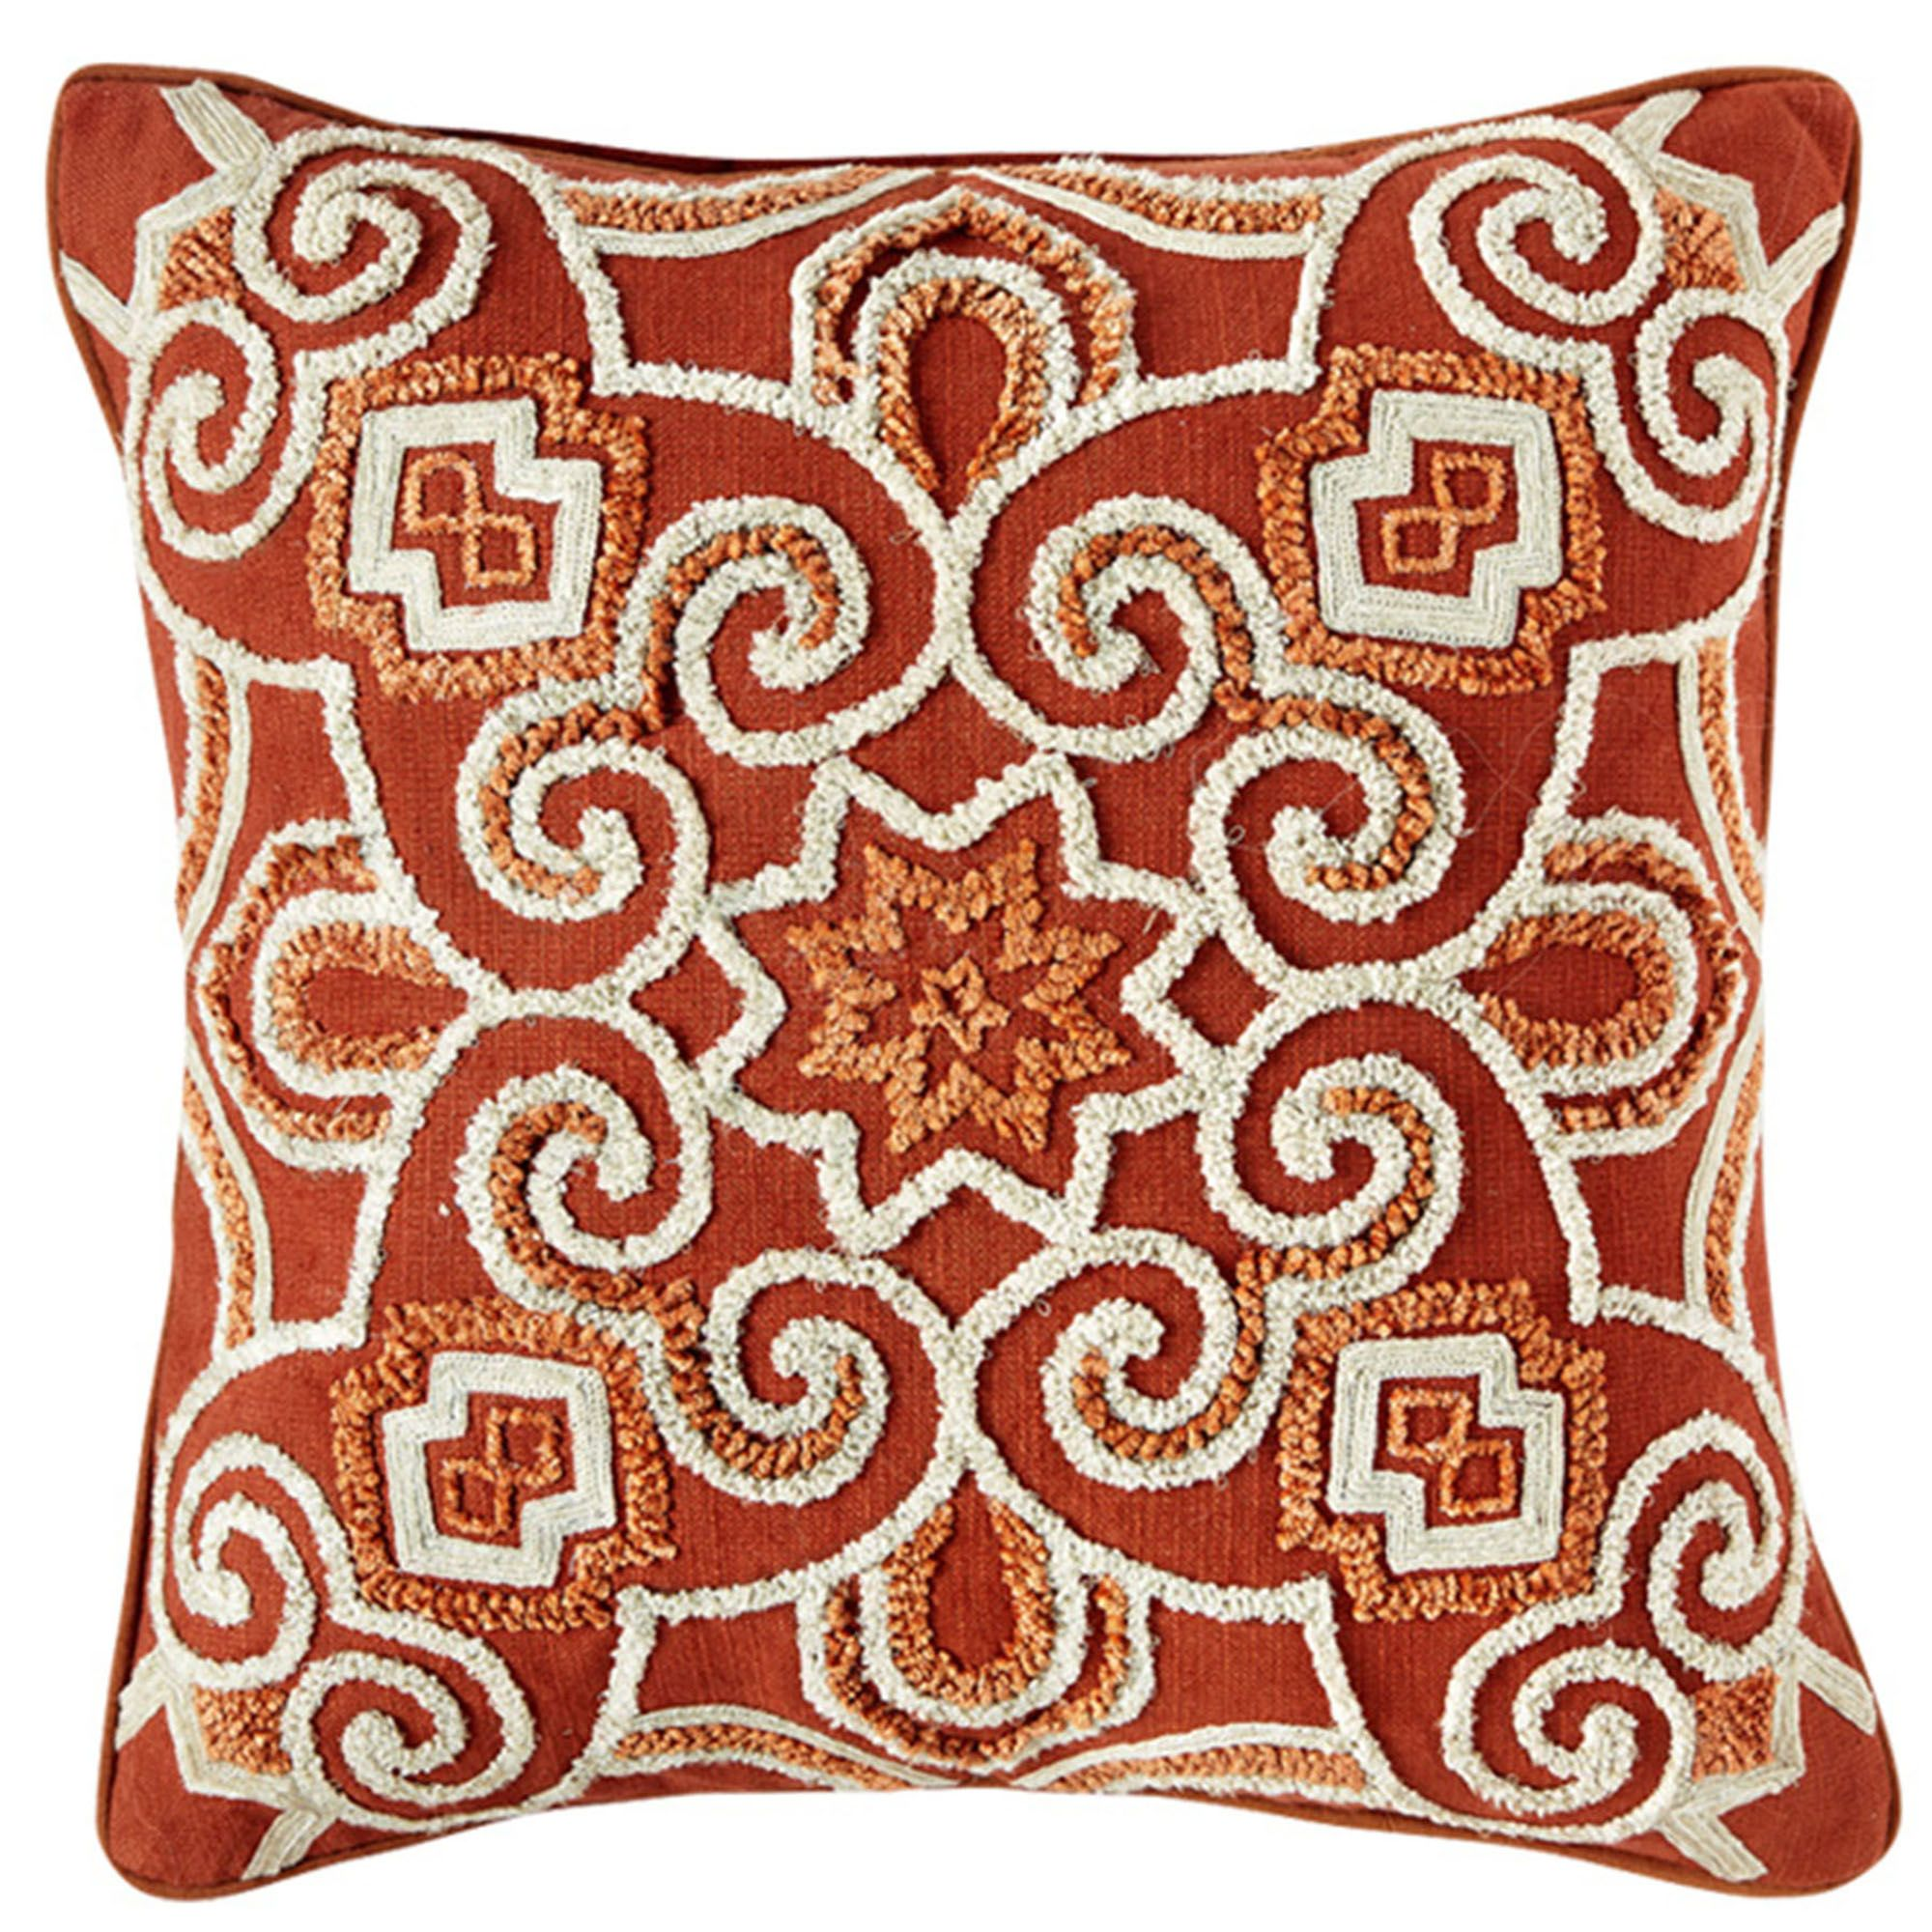 One Of My Favorite Discoveries At Christmastreeshops Com Throw Pillows Christmas Christmas Tree Shop Tree Shop